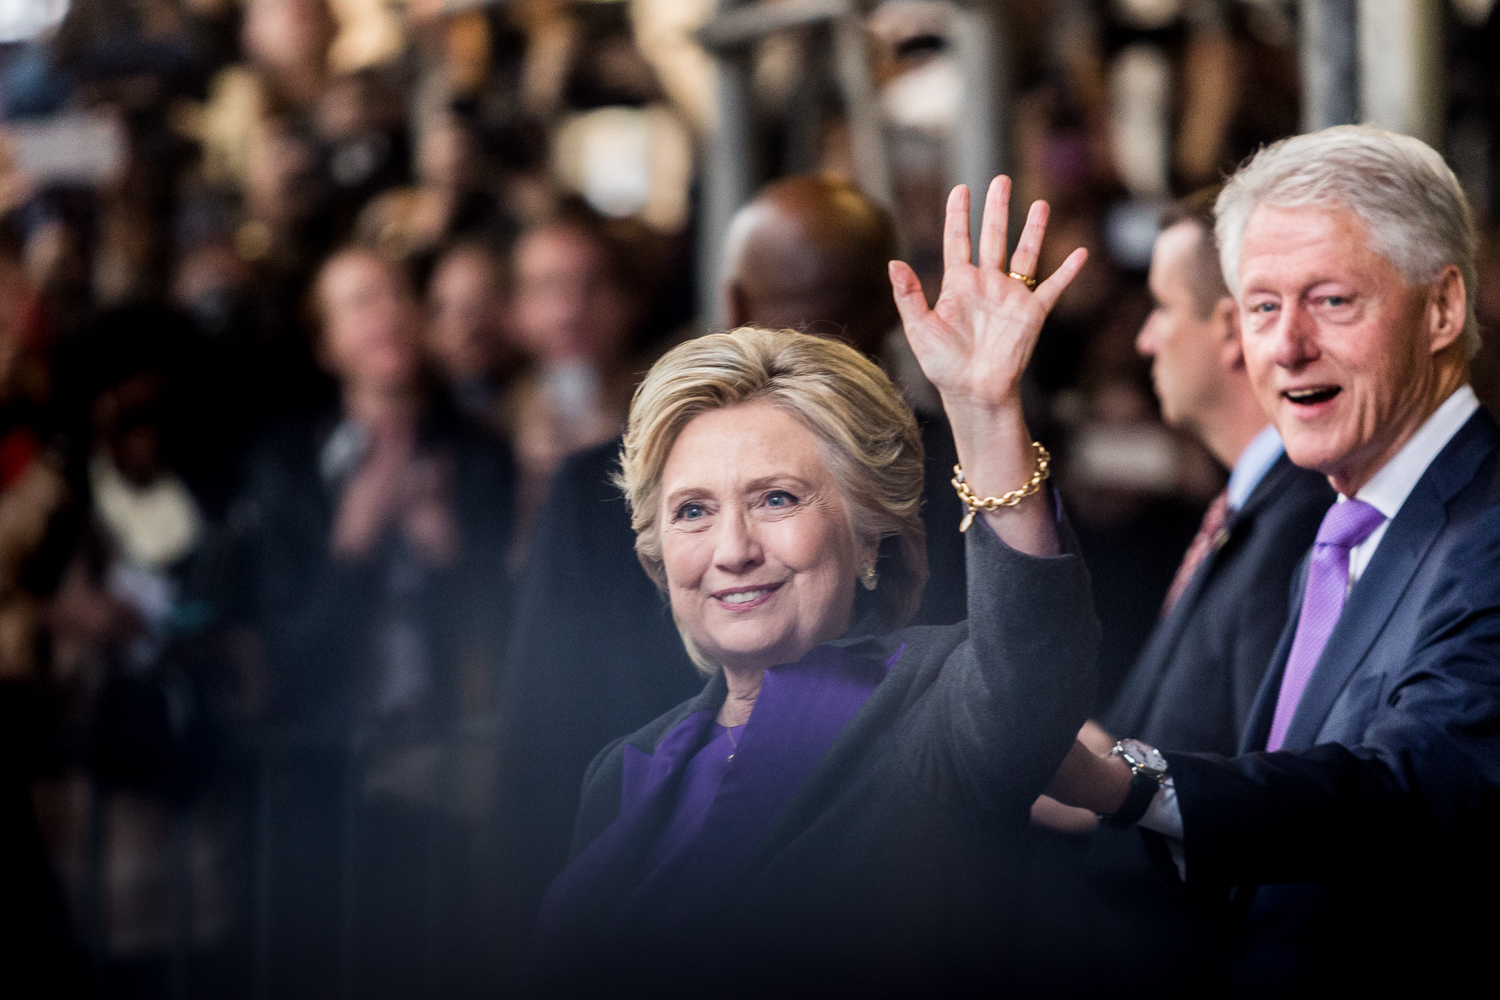 """Hillary and Bill Clinton wave to onlookers while leaving the New Yorker Hotel where she made her concession speech to Donald Trump Wednesday afternoon, Nov. 9, 2016. During the speech Clinton said, """"This loss hurts, but please never stop believing that fighting for what's right is worth it."""""""